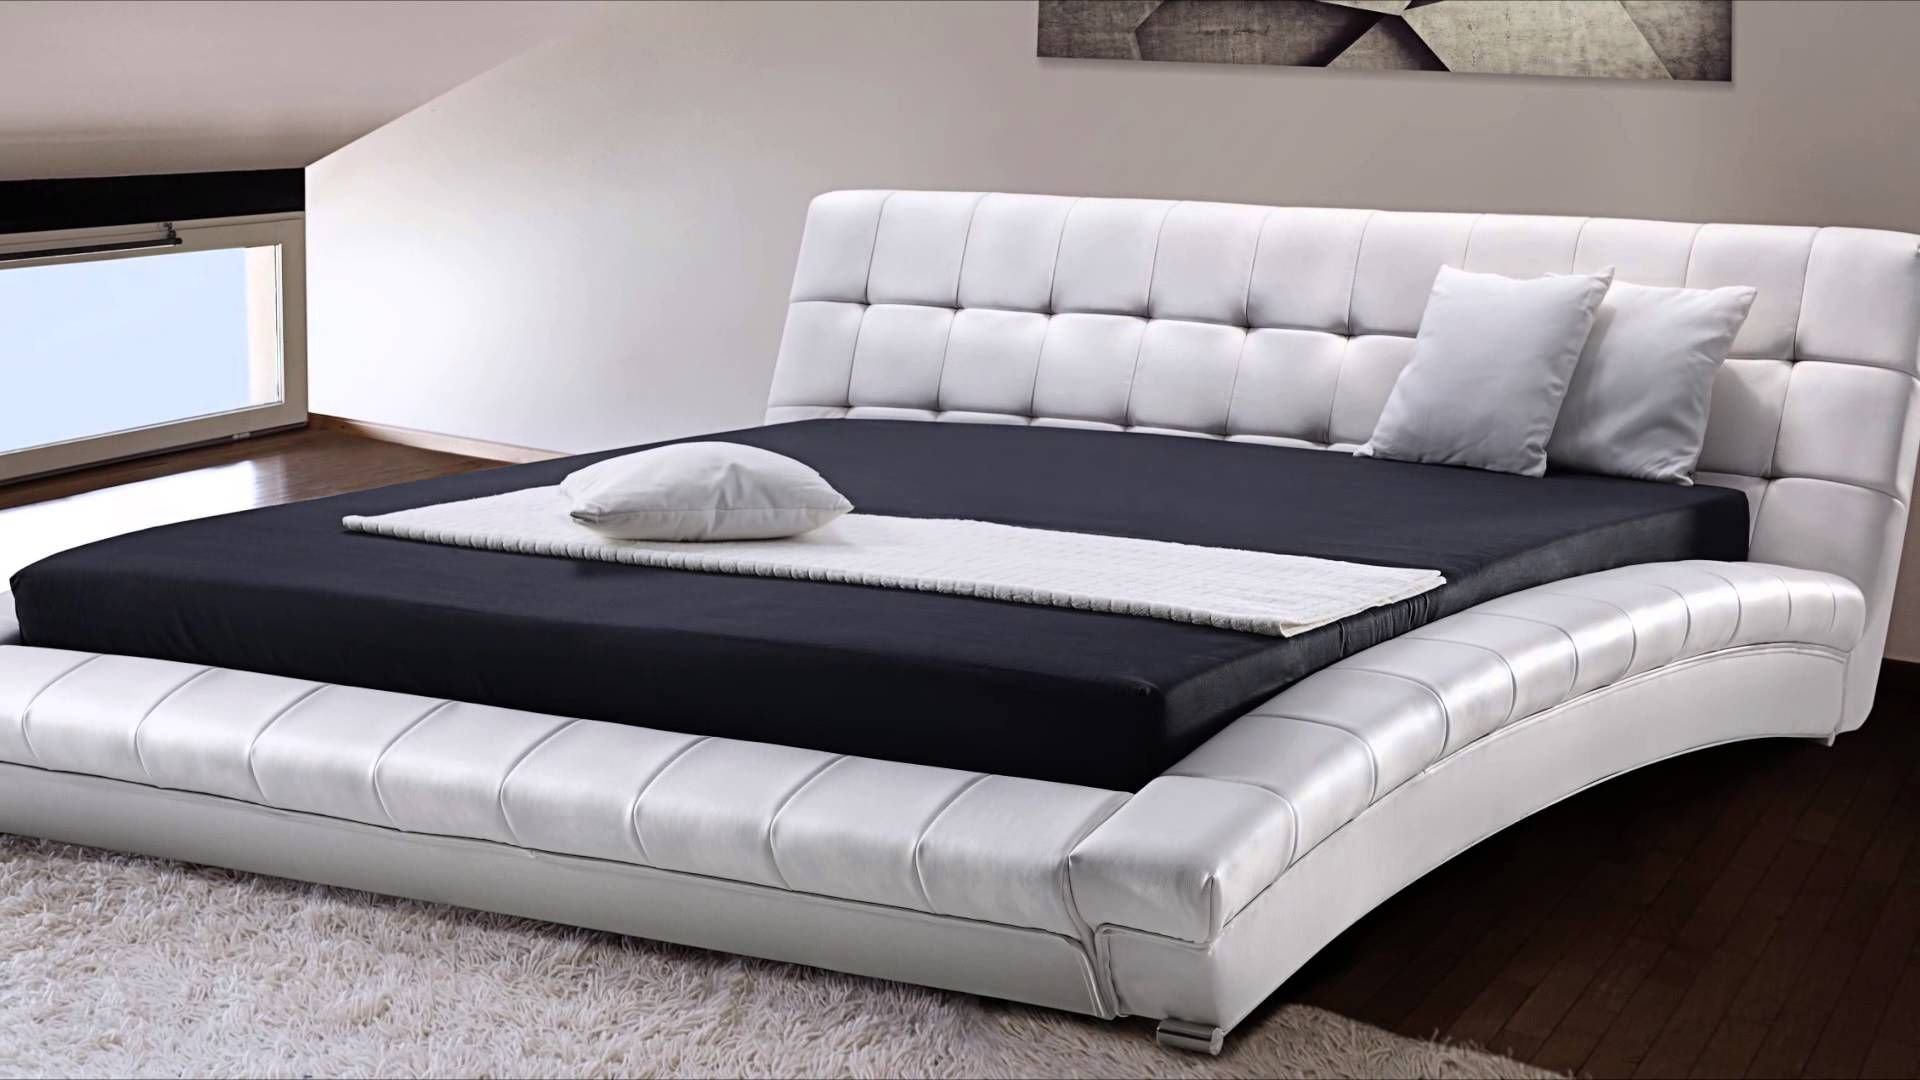 How Big Is A King Size Bed Mattress King Size Bed Mattress Super King Size Bed Cheap King Size Beds